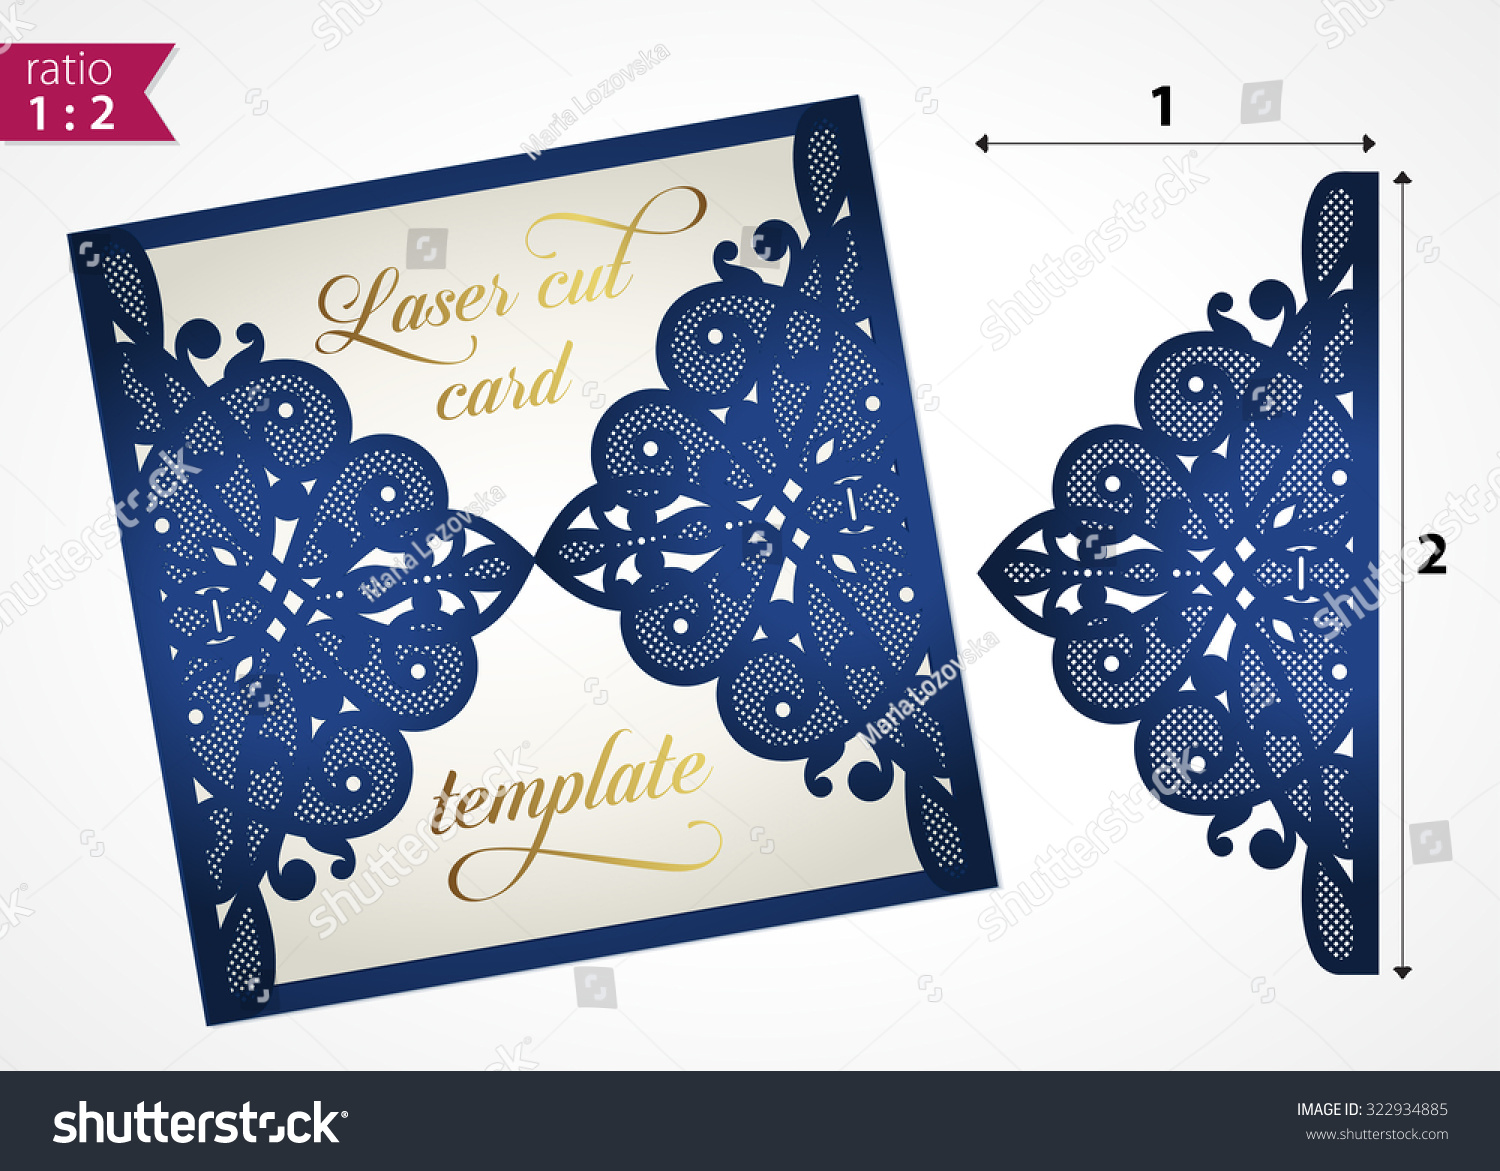 free laser cutter templates - die cut wedding invitation card template stock vector